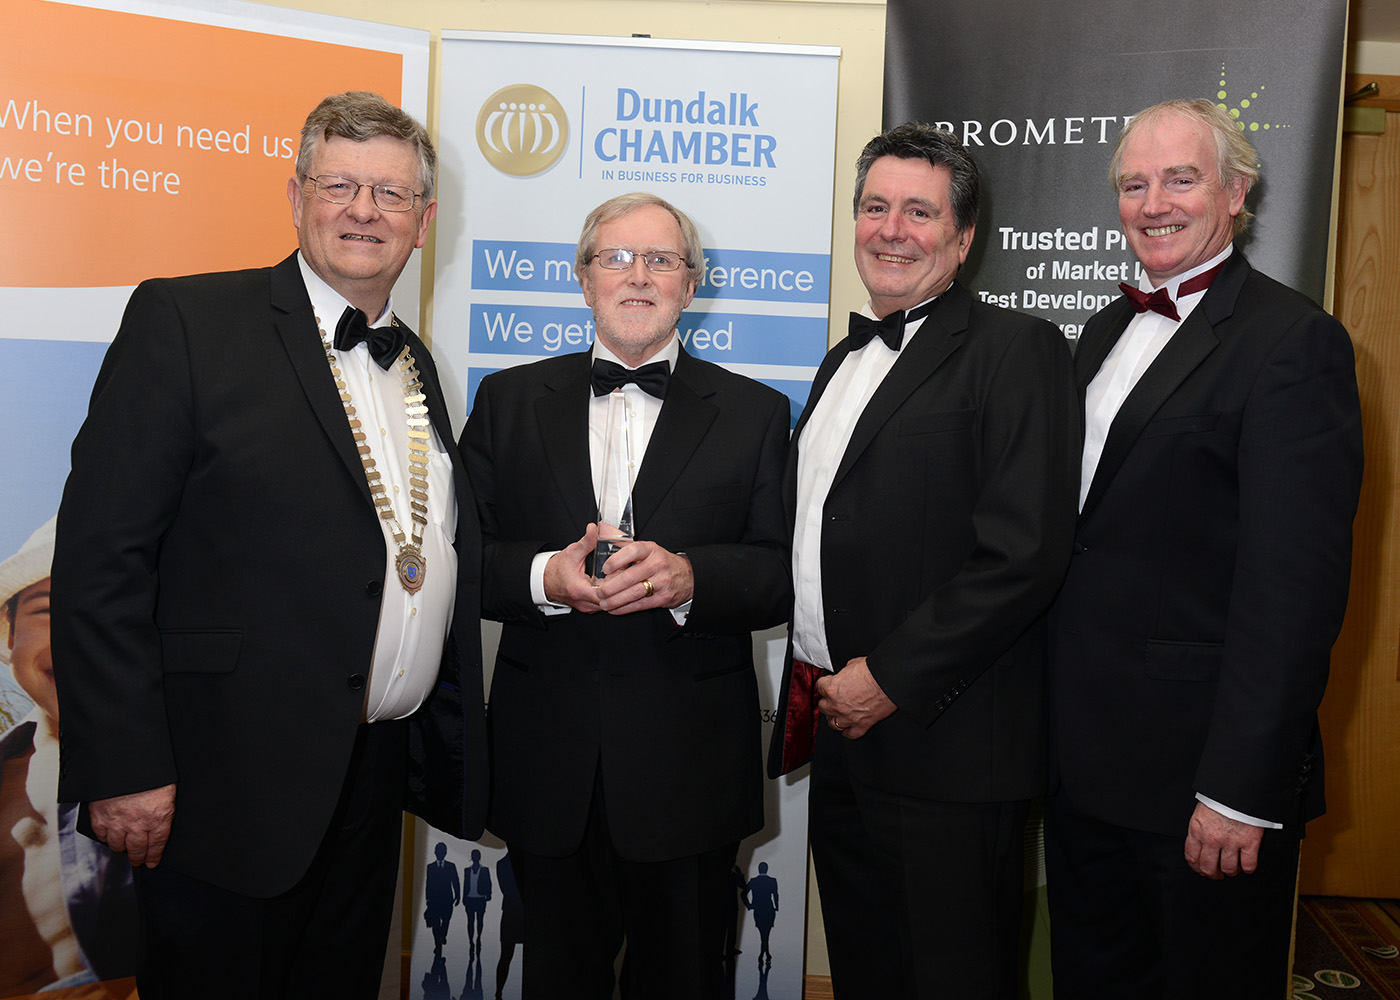 Gerry Jones, MD Dunraven Systems receiving his award